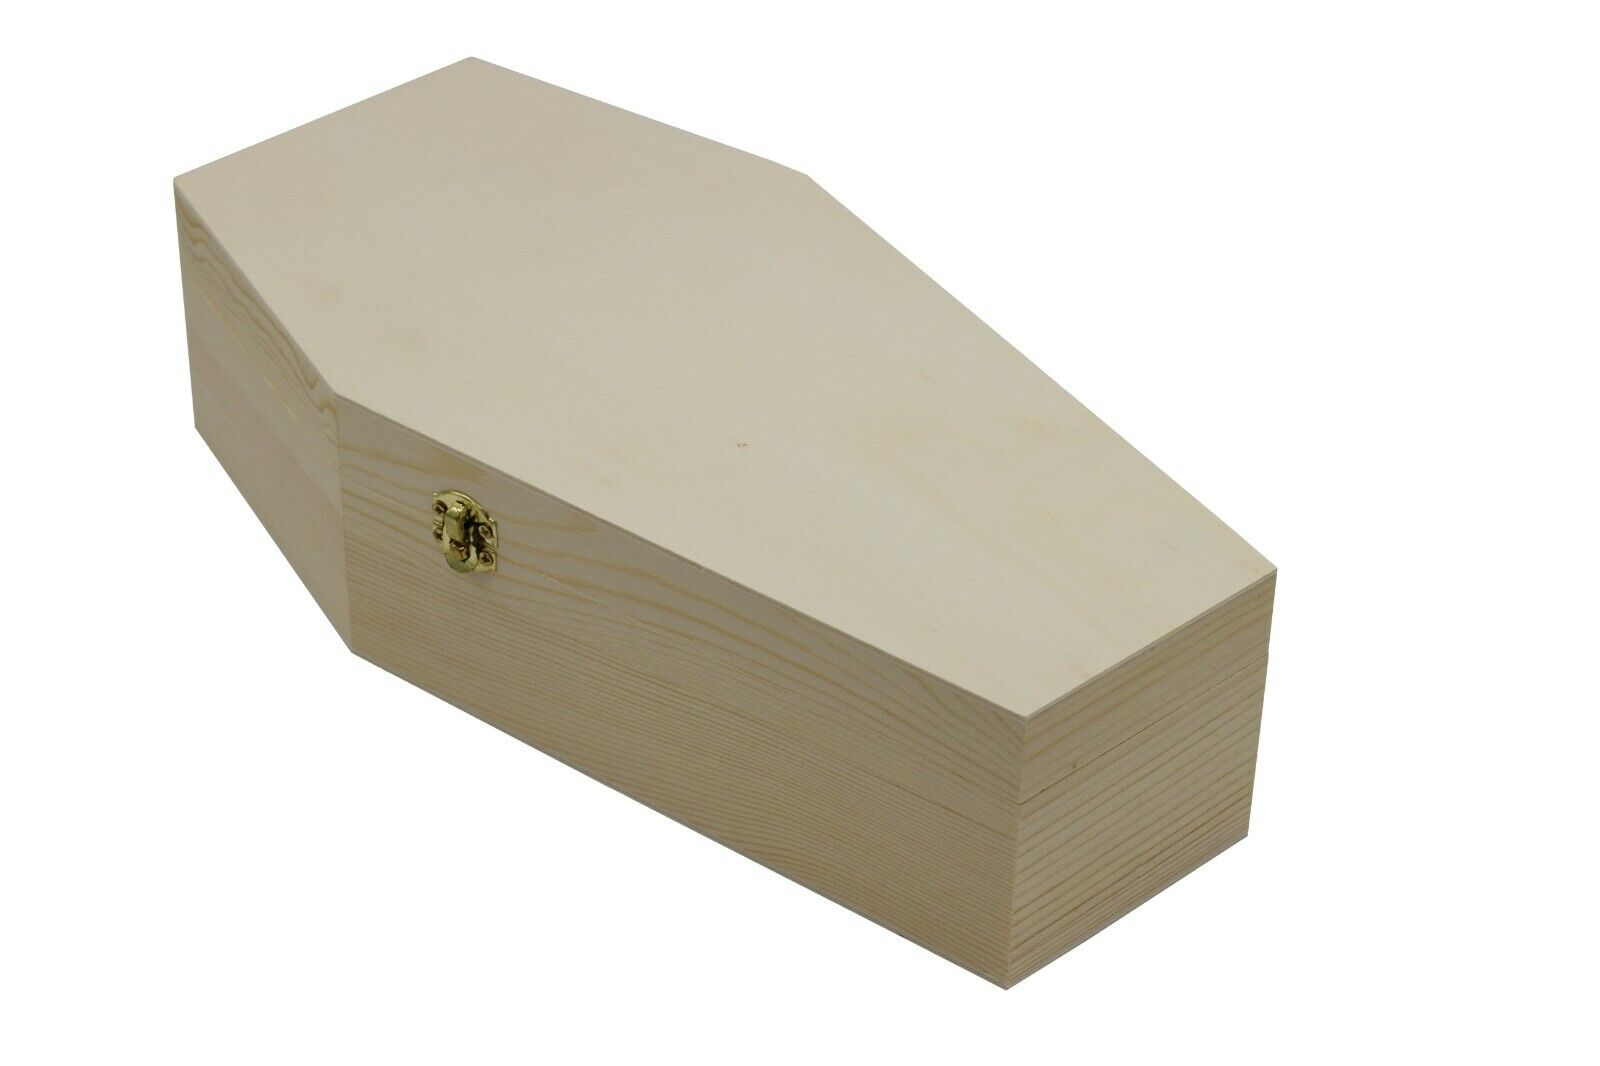 Large 12 Inch Halloween Coffin Box, Fillable Hinged Box for Halloween Décor Crafting Pieces